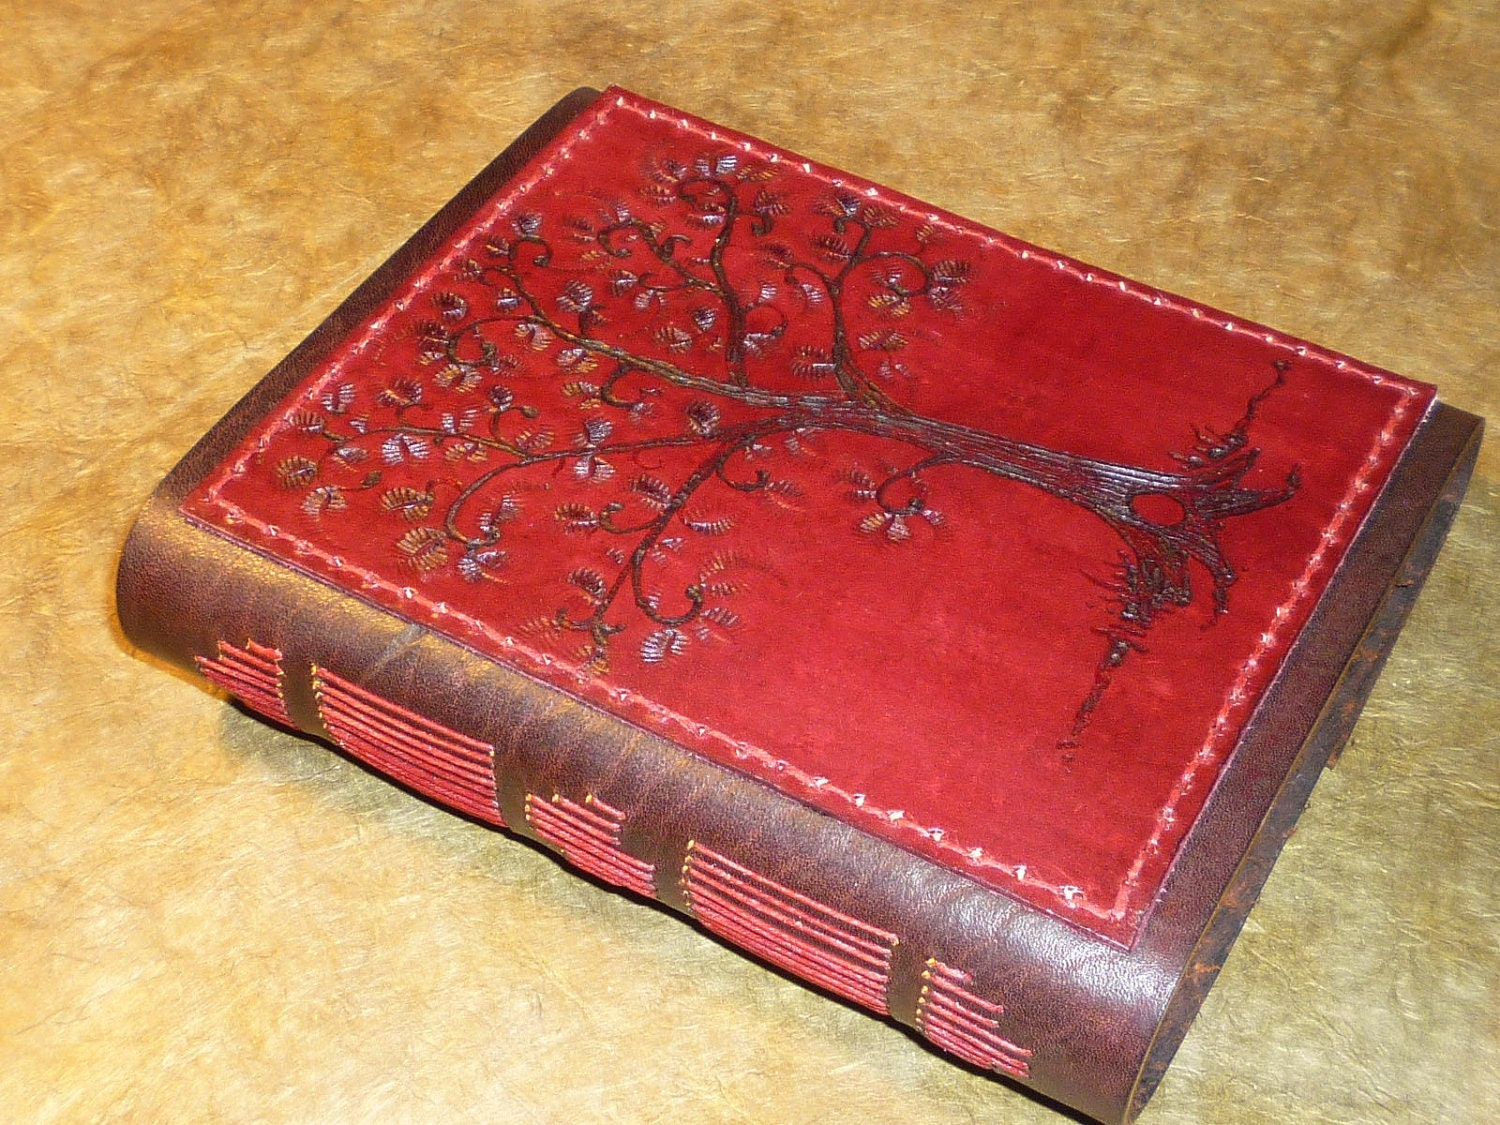 Fiery Tree of Life, Leather Book, Journal, Diary, or Sketchbook